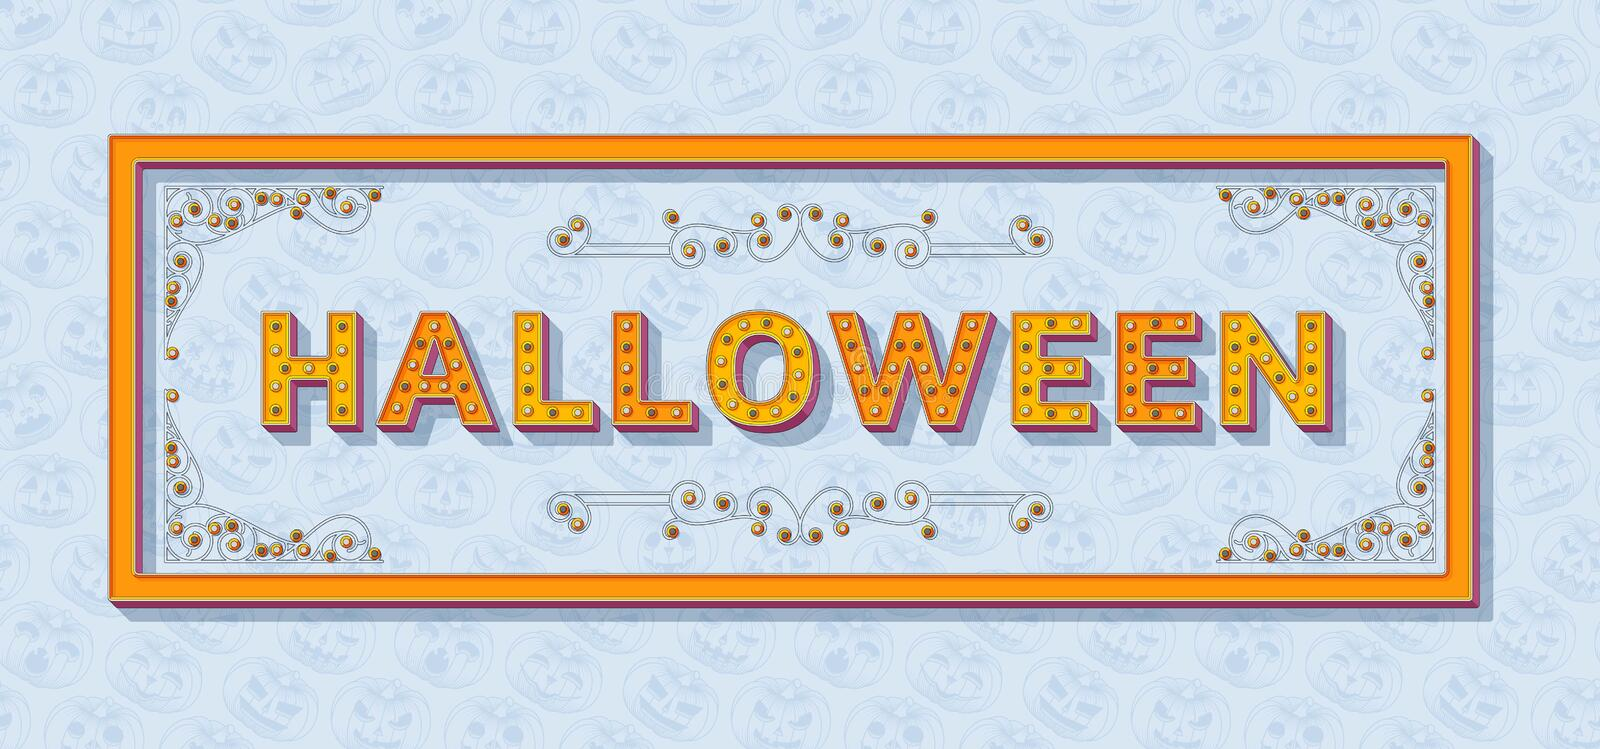 Halloween background template with retro stylized typography. 3d font with colored buttons, ornate swirls frames and stock illustration